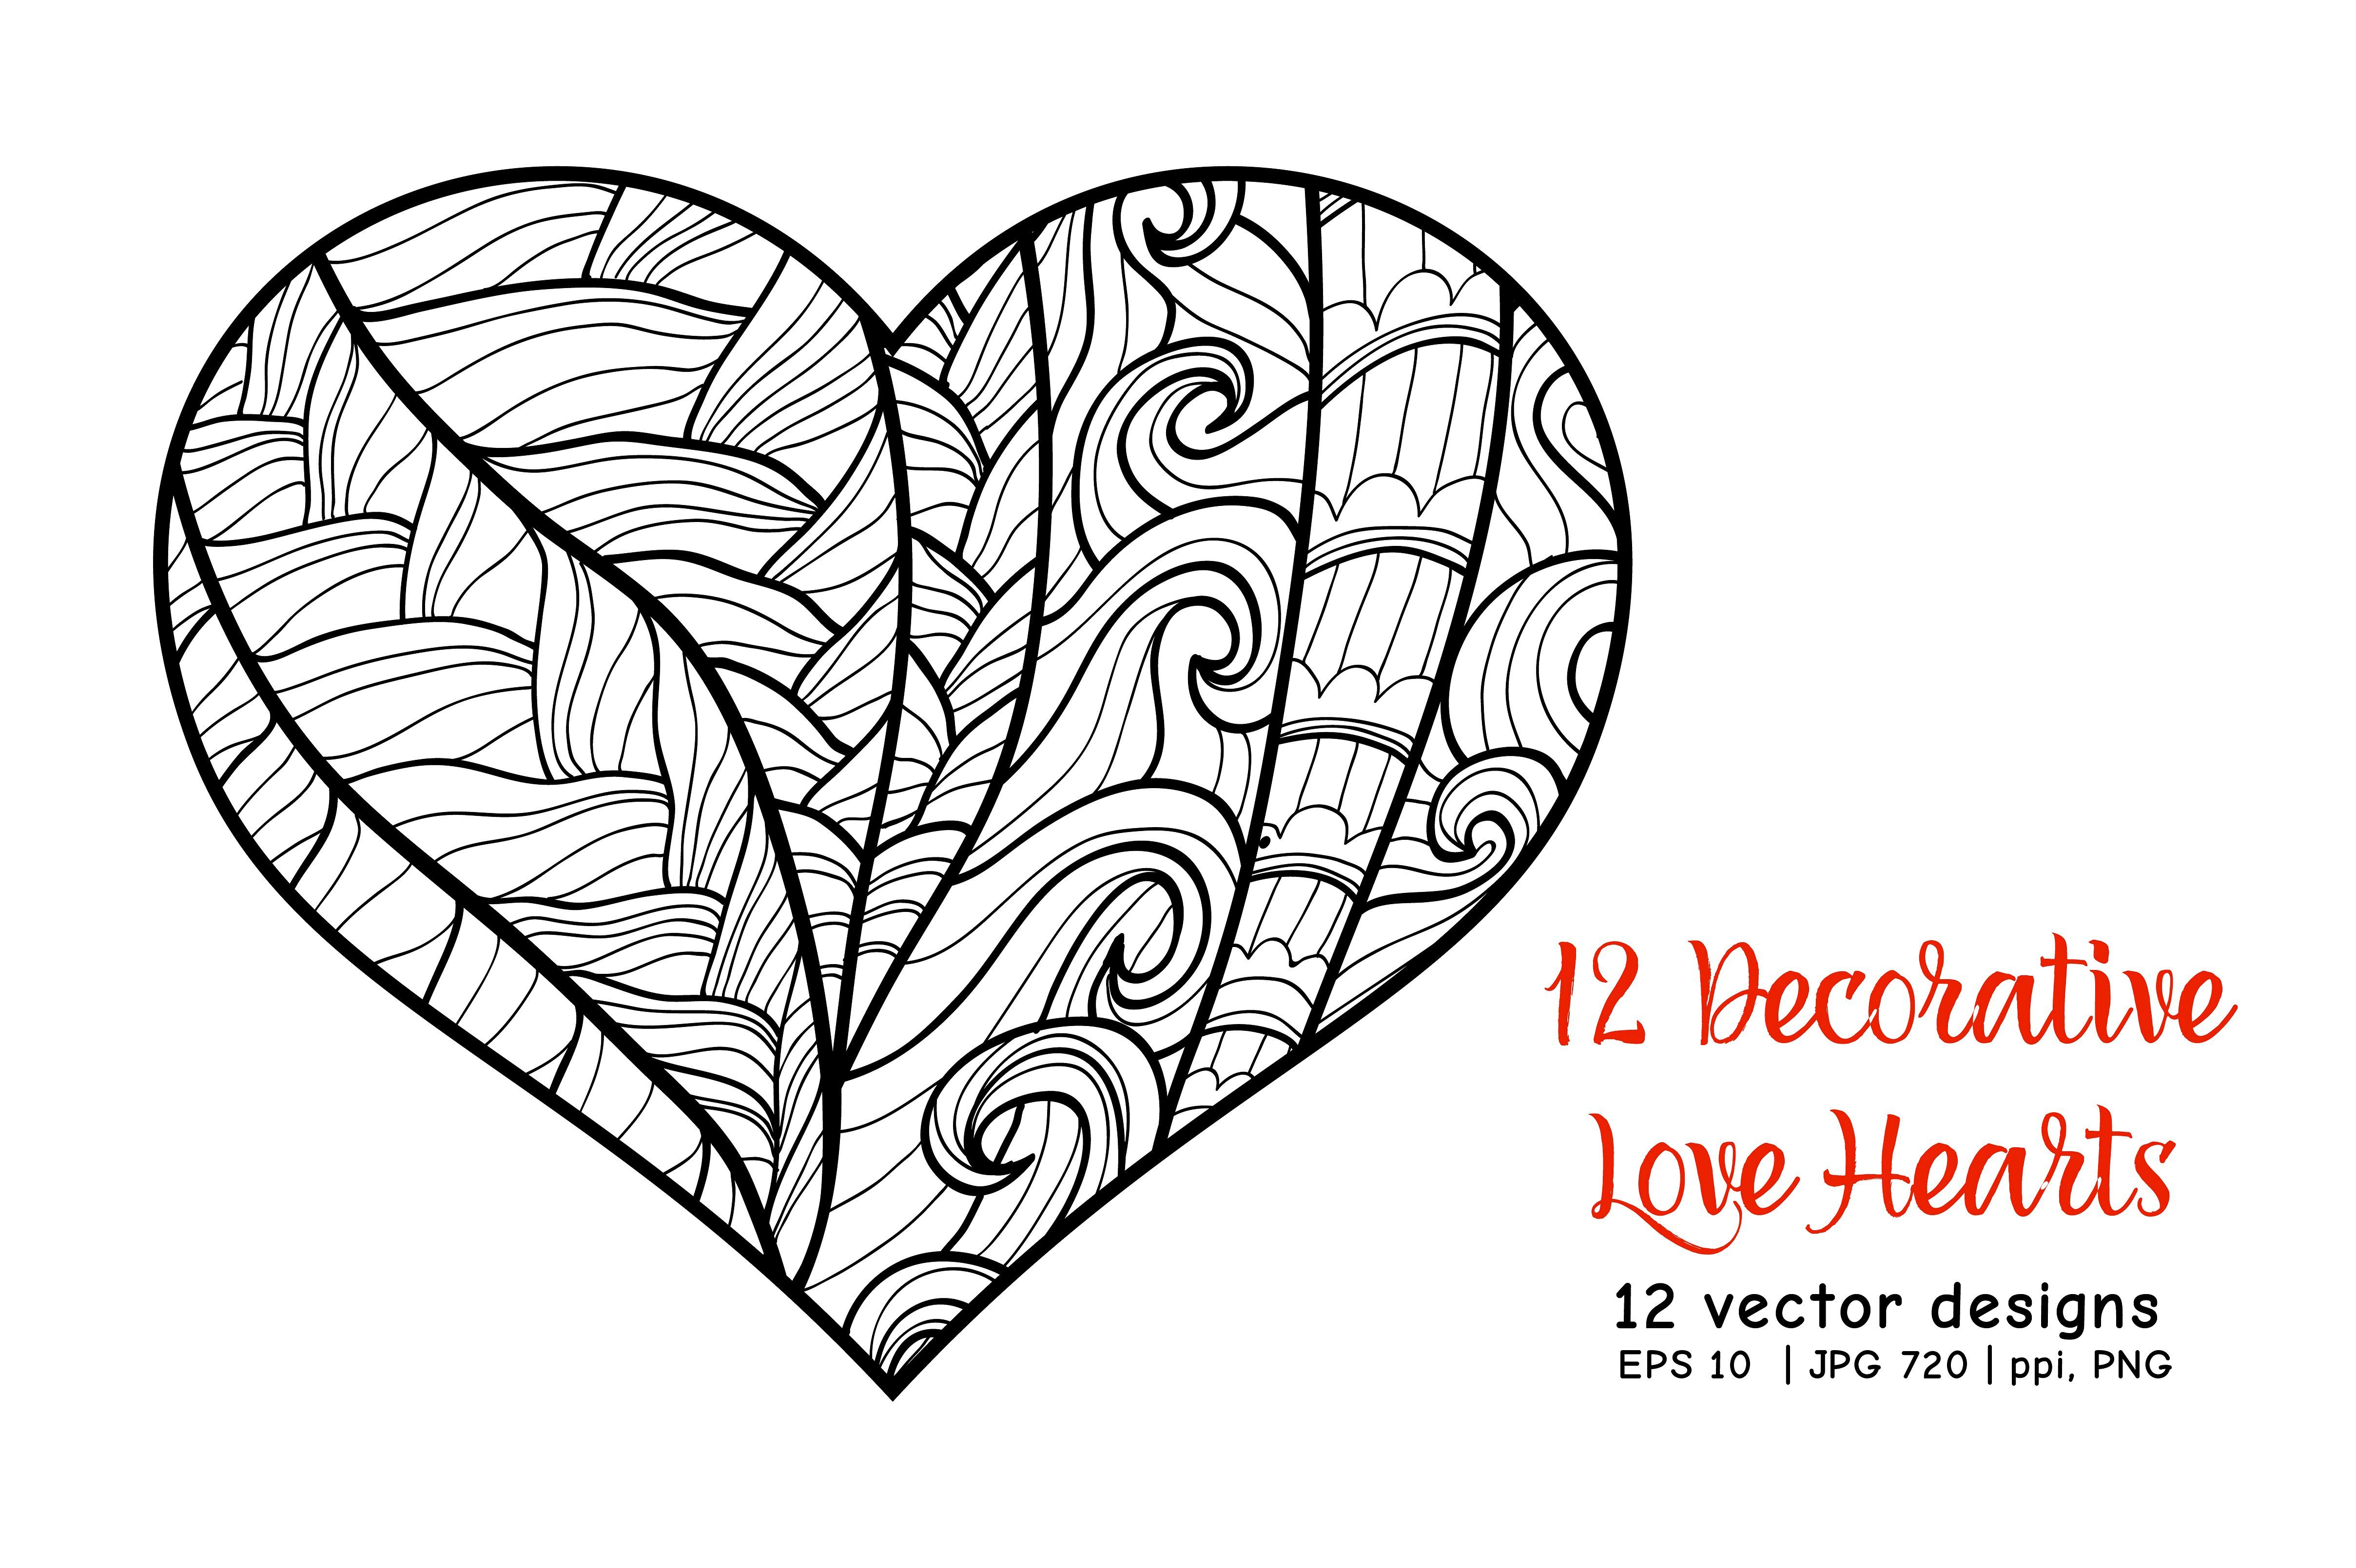 12 Decorative Love Hearts Graphic Poster Art Line Art Drawings Love Heart